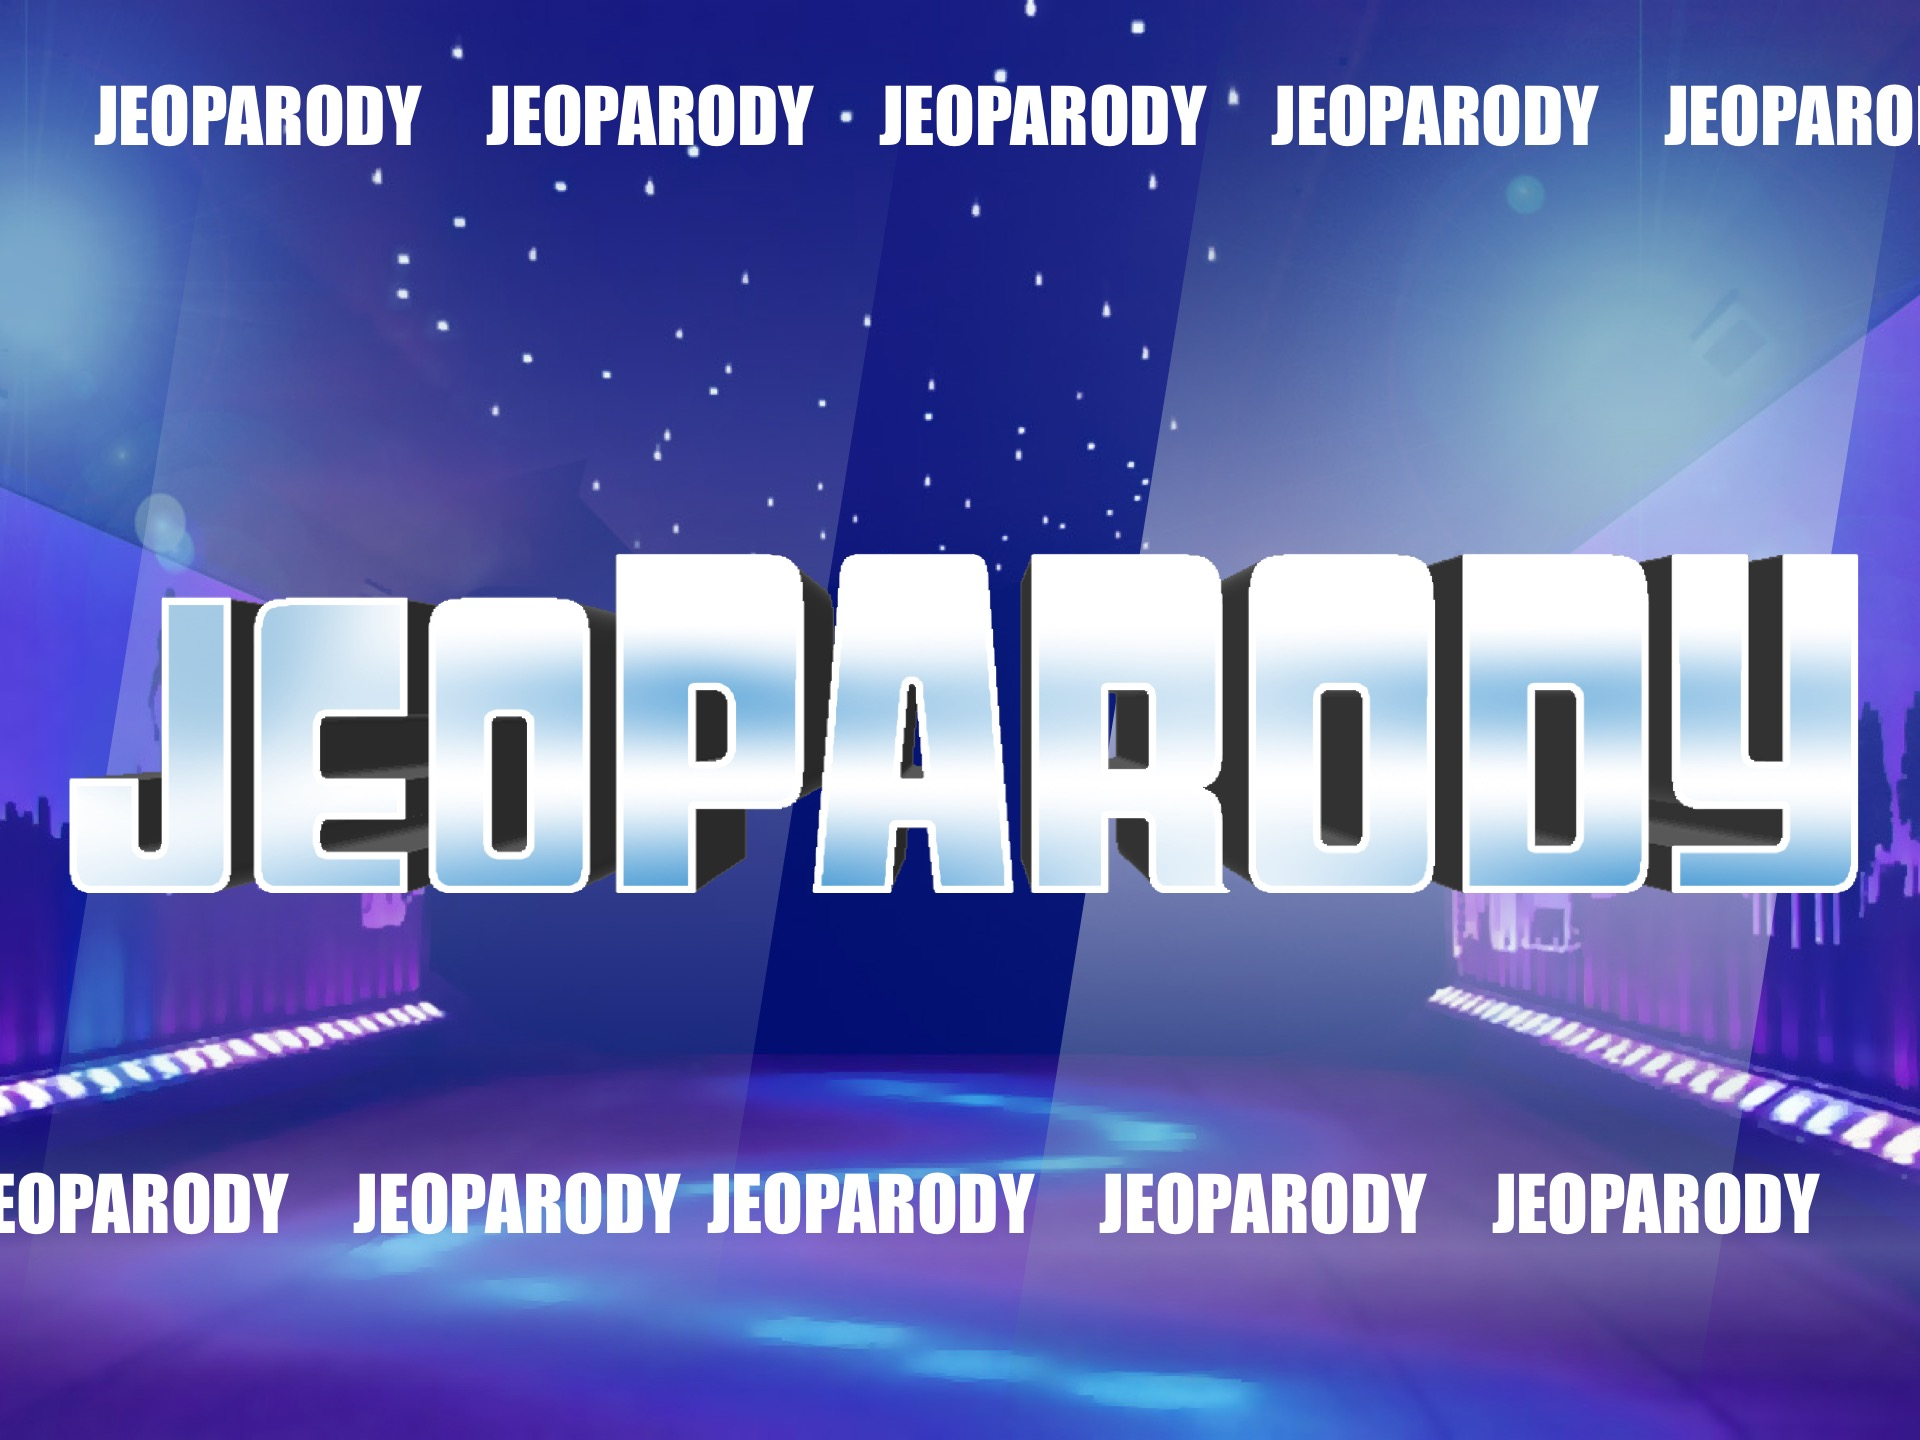 Jeopardy powerpoint game template youth downloadsyouth downloads description designed in 2016 this is the best free customizable jeopardy style powerpoint template game toneelgroepblik Choice Image